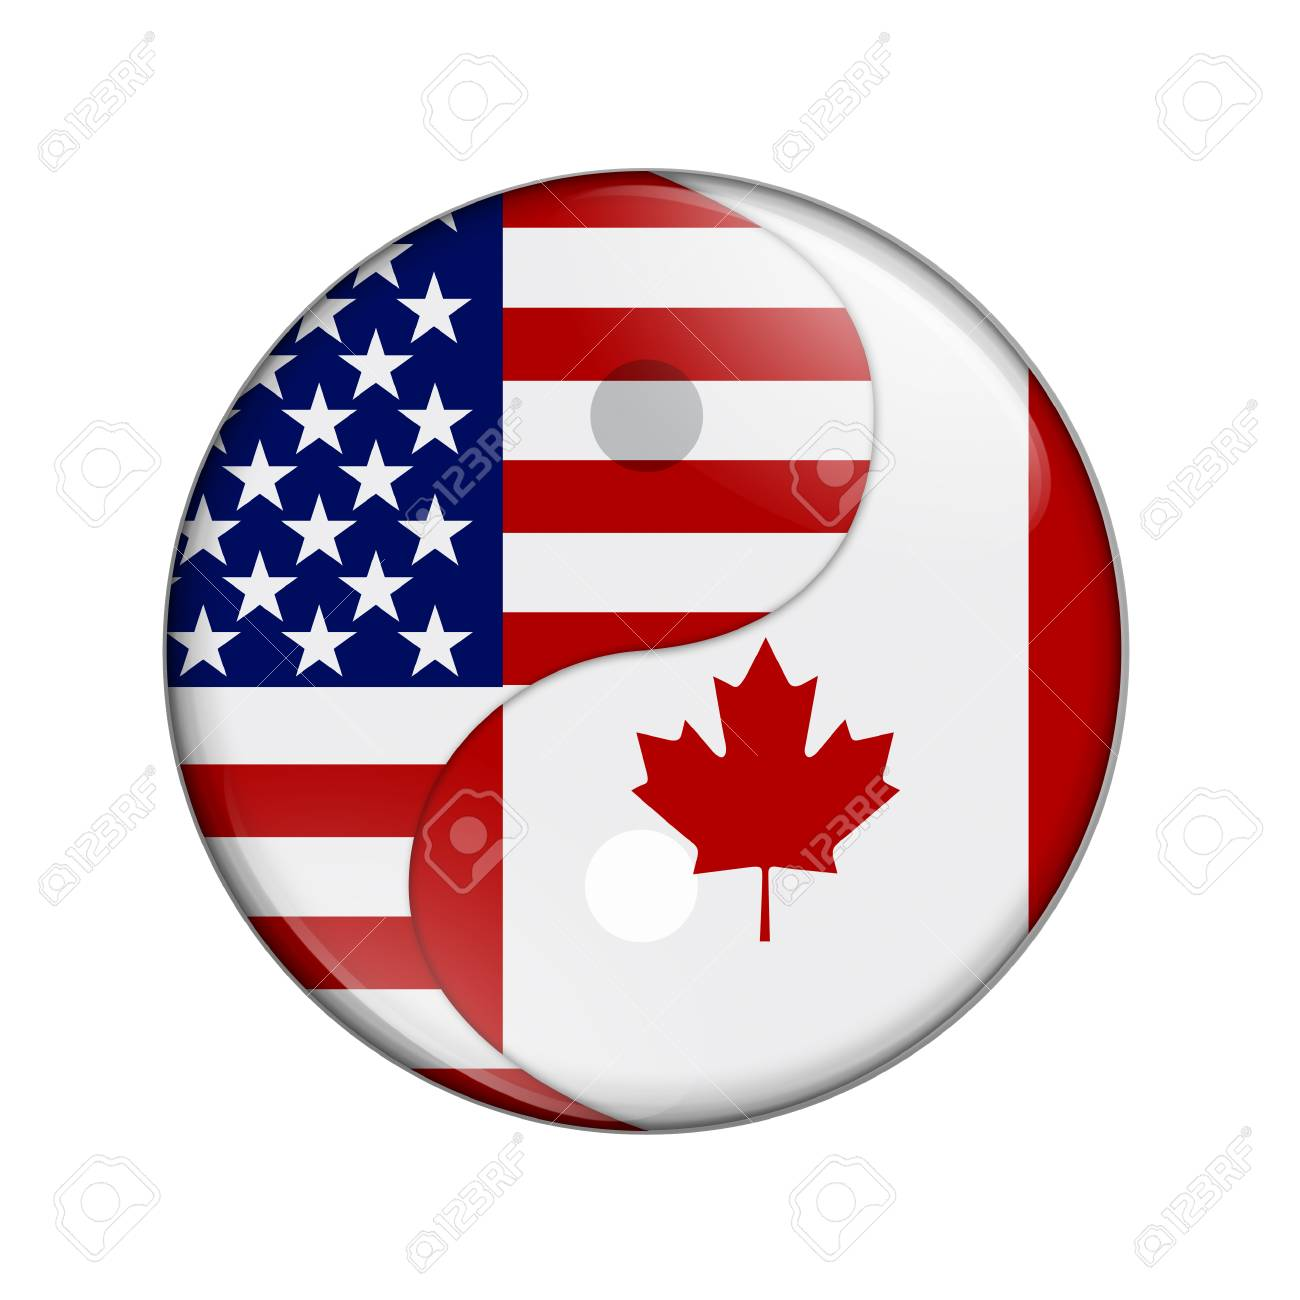 Us and canadian flag stock photos royalty free business images usa and canada working together the us flag and canadian flag on a yin yang biocorpaavc Choice Image